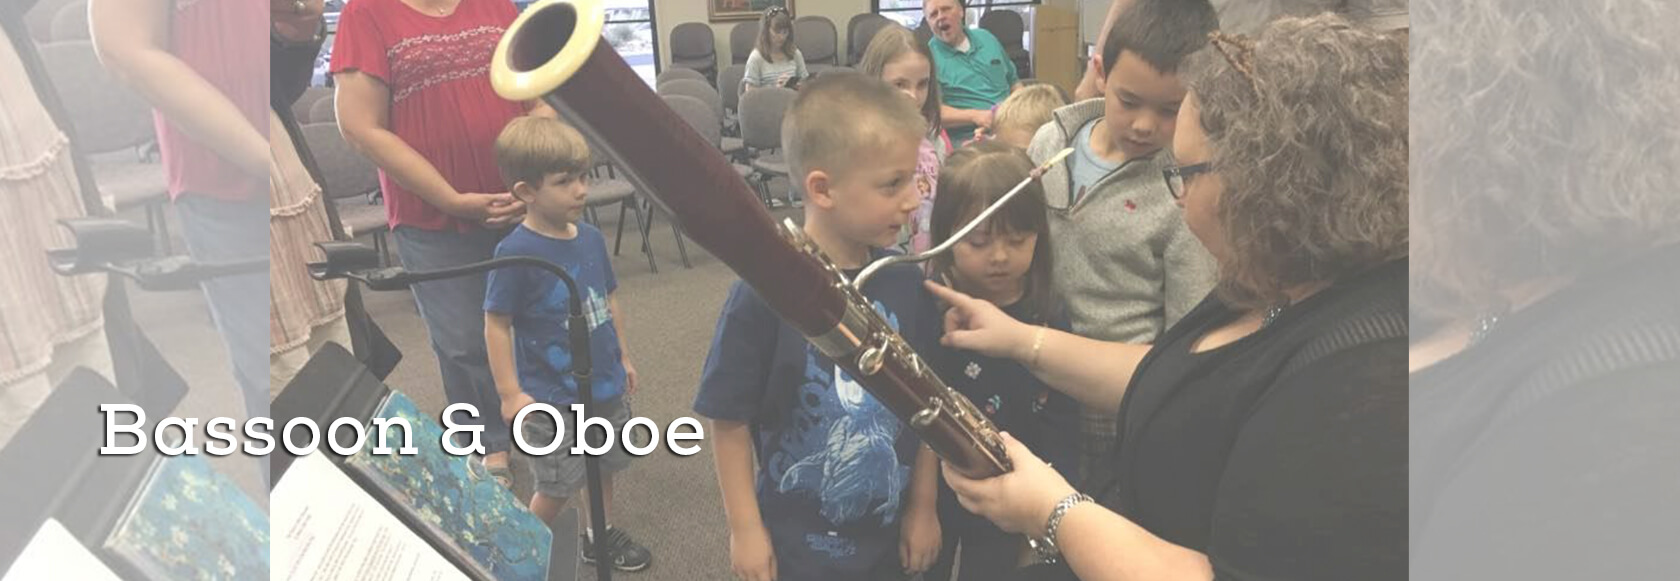 Bassoon & Oboe Lessons